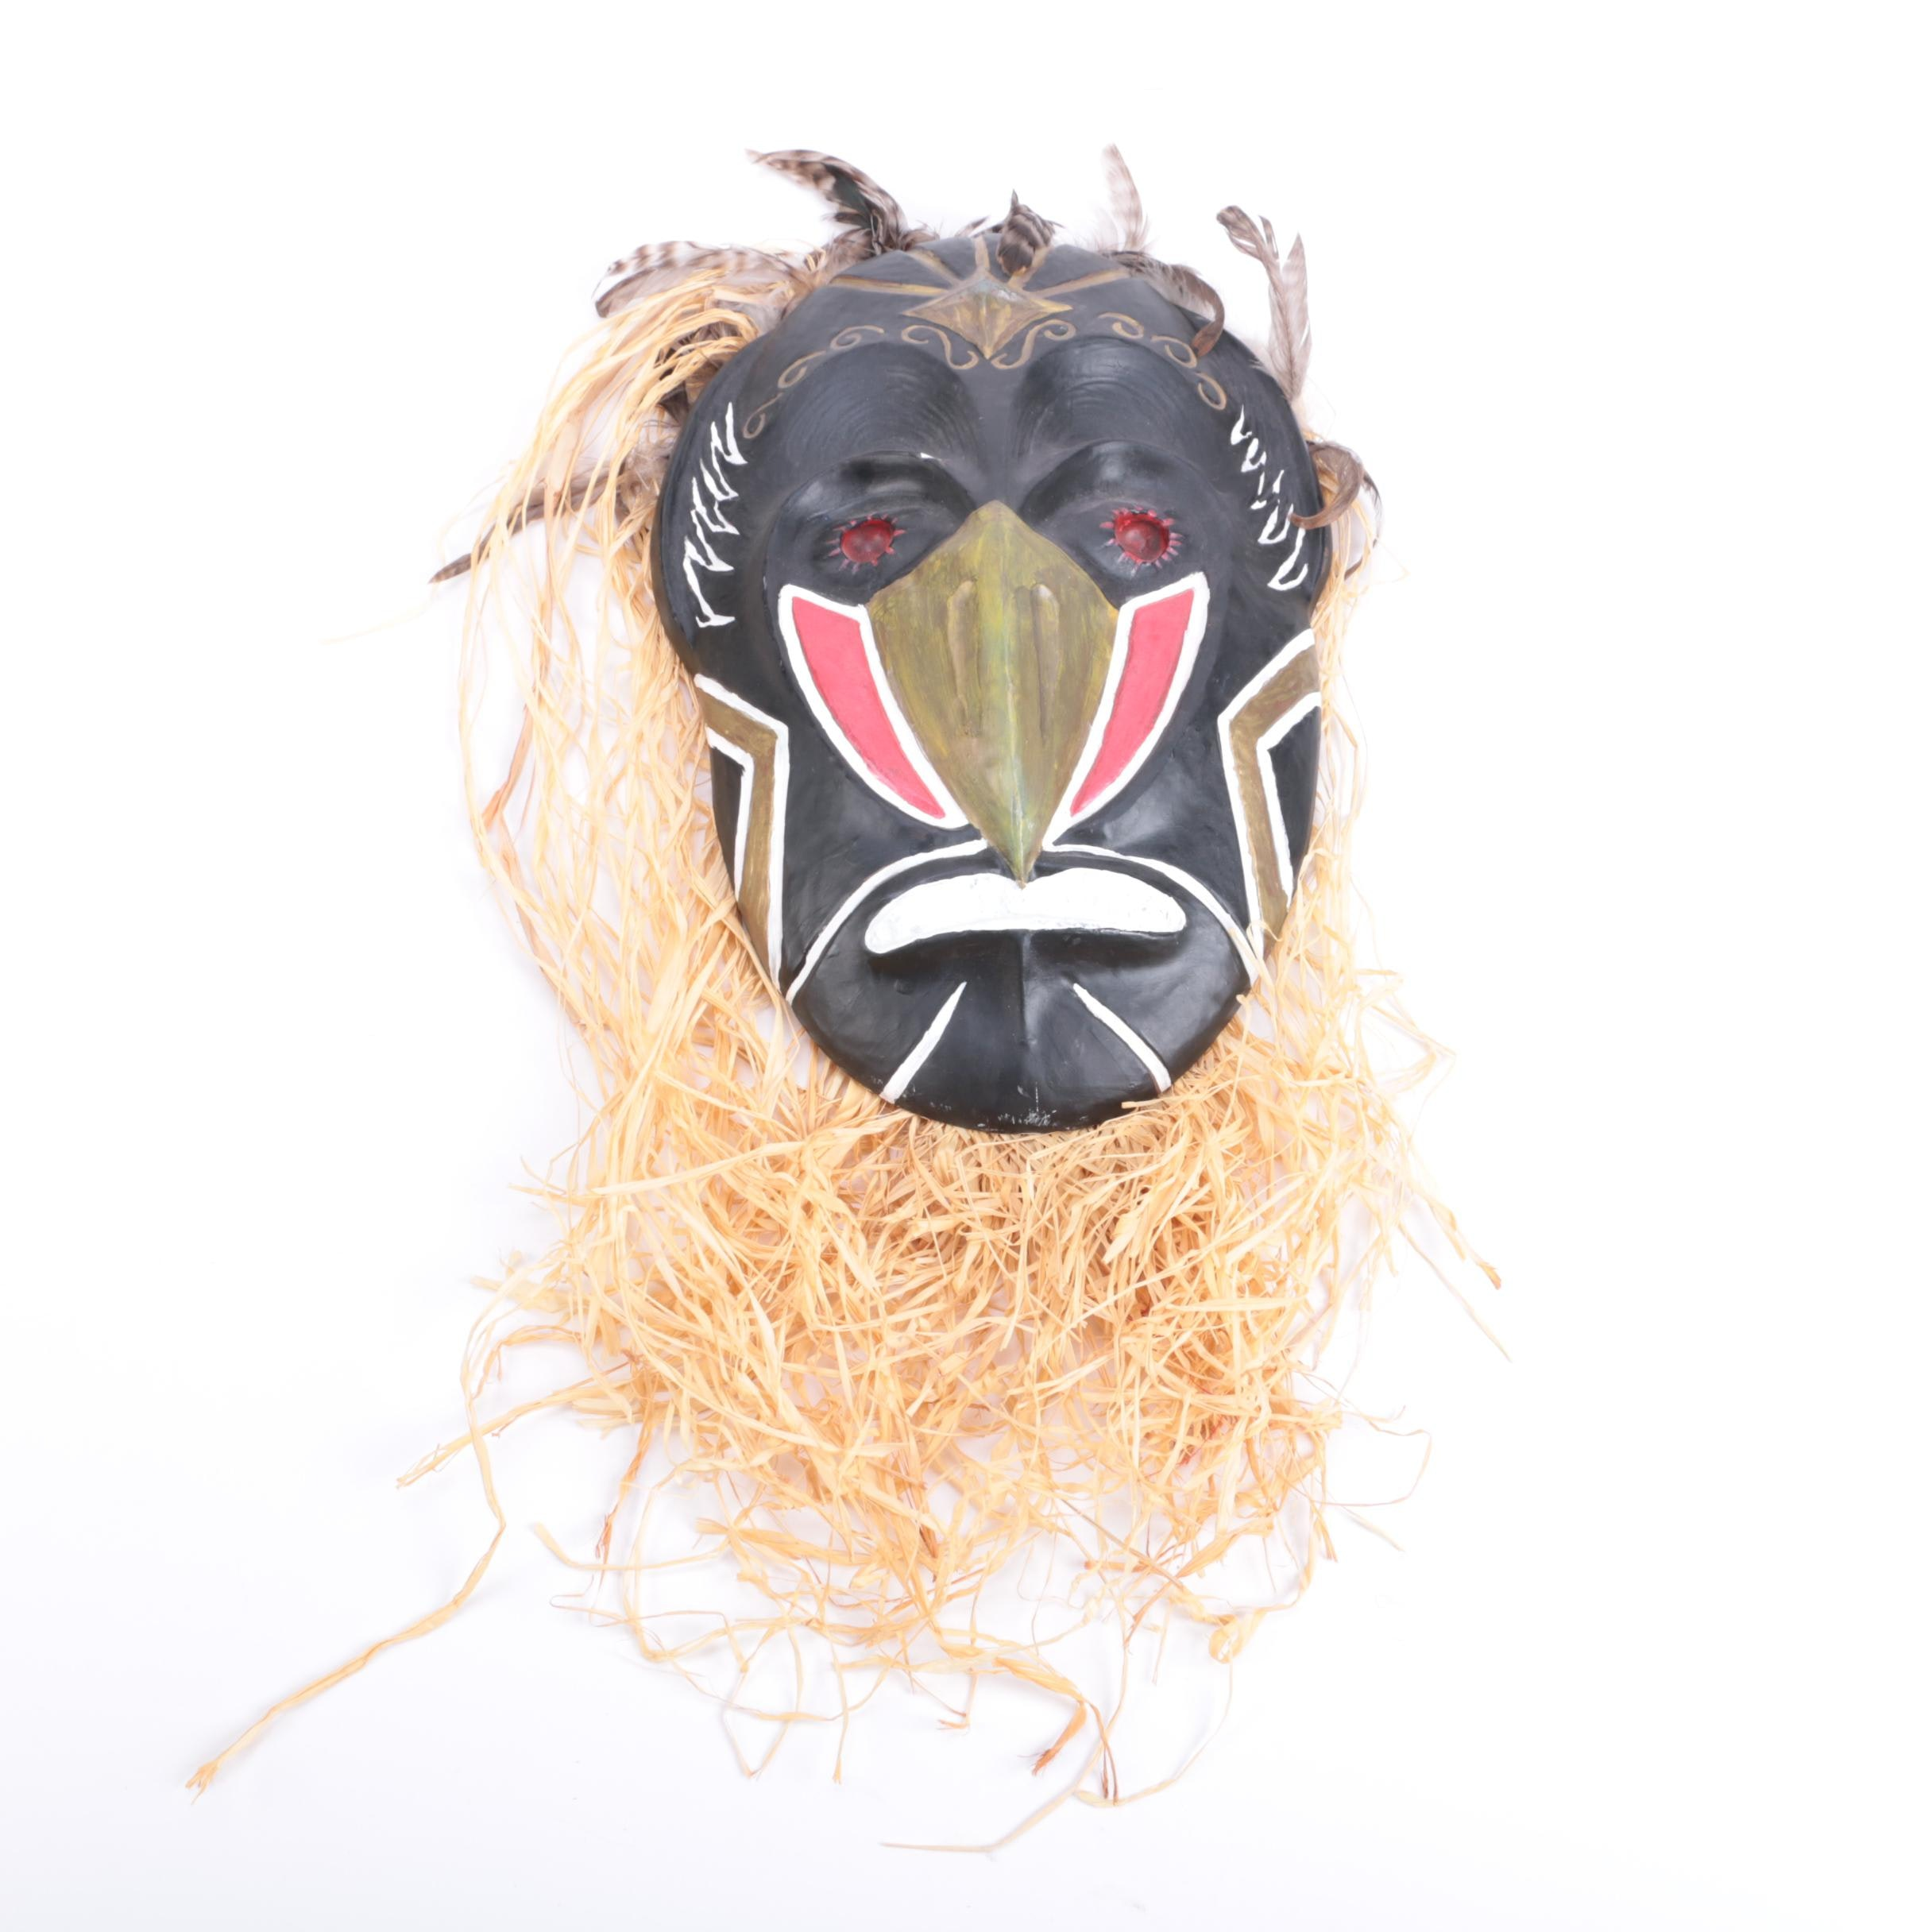 Polychrome Plaster Mask With Raffia and Feathers